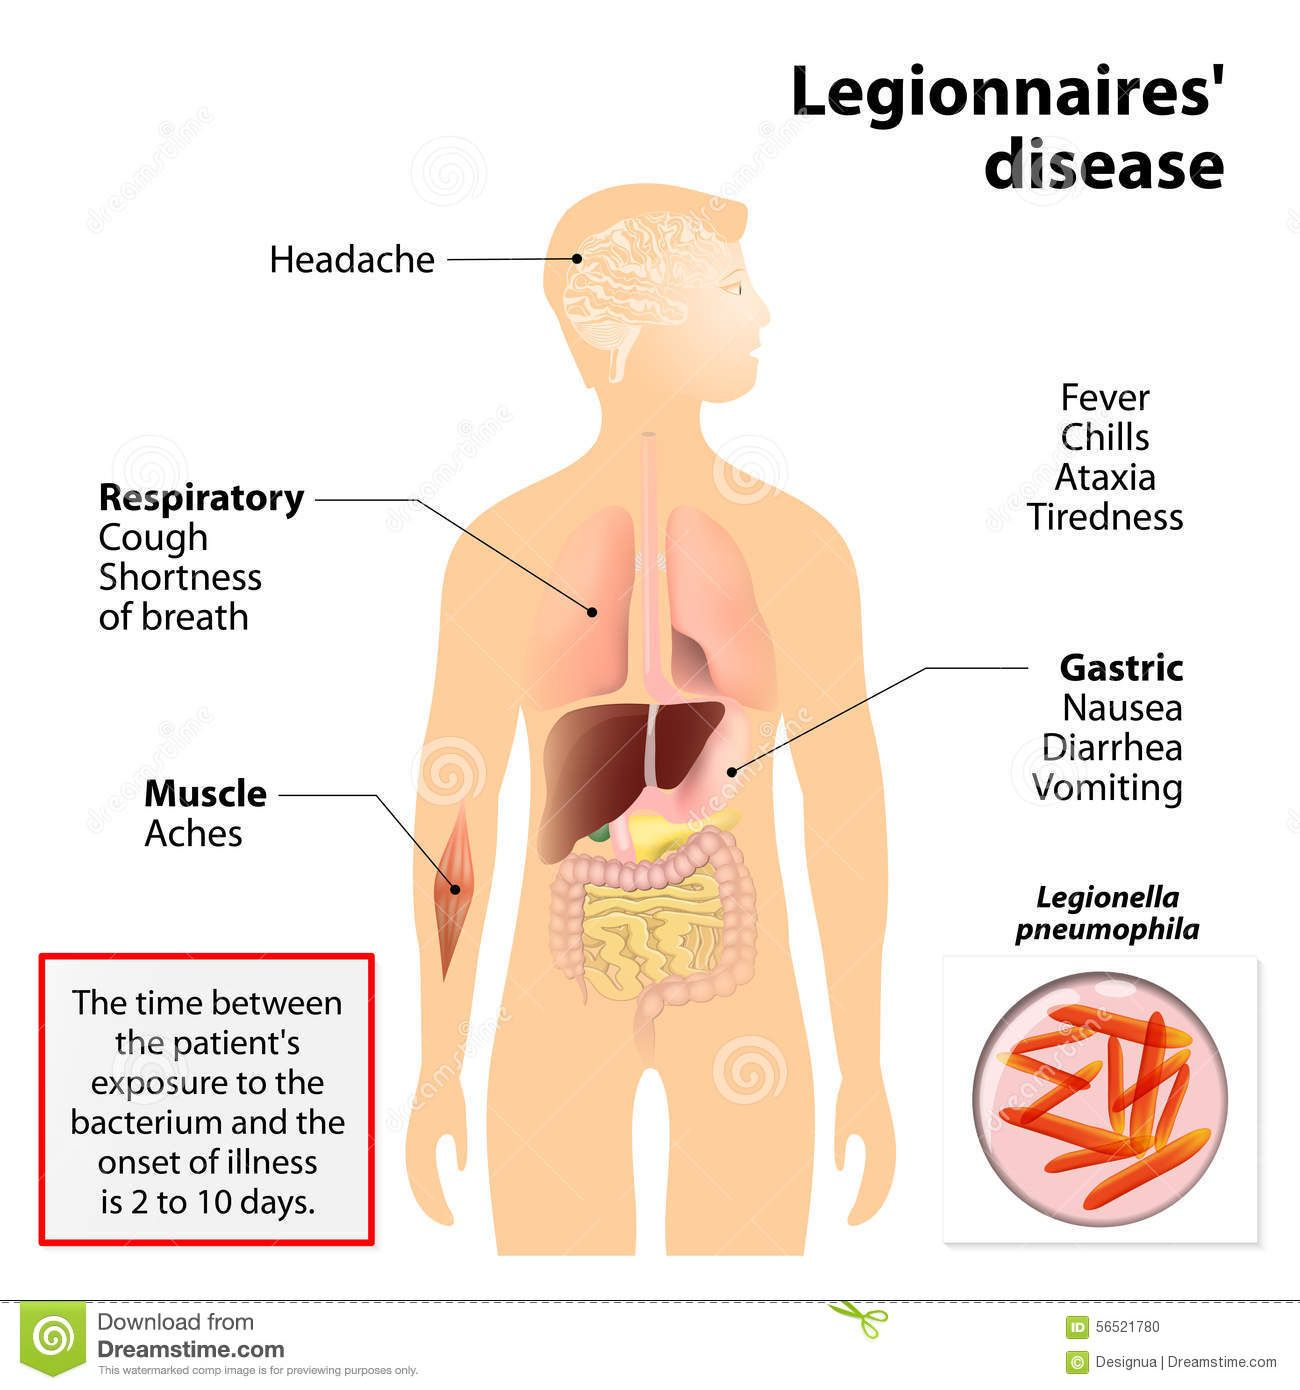 Legionnaires Disease Legionellosis Legion Fever Signs Symptoms